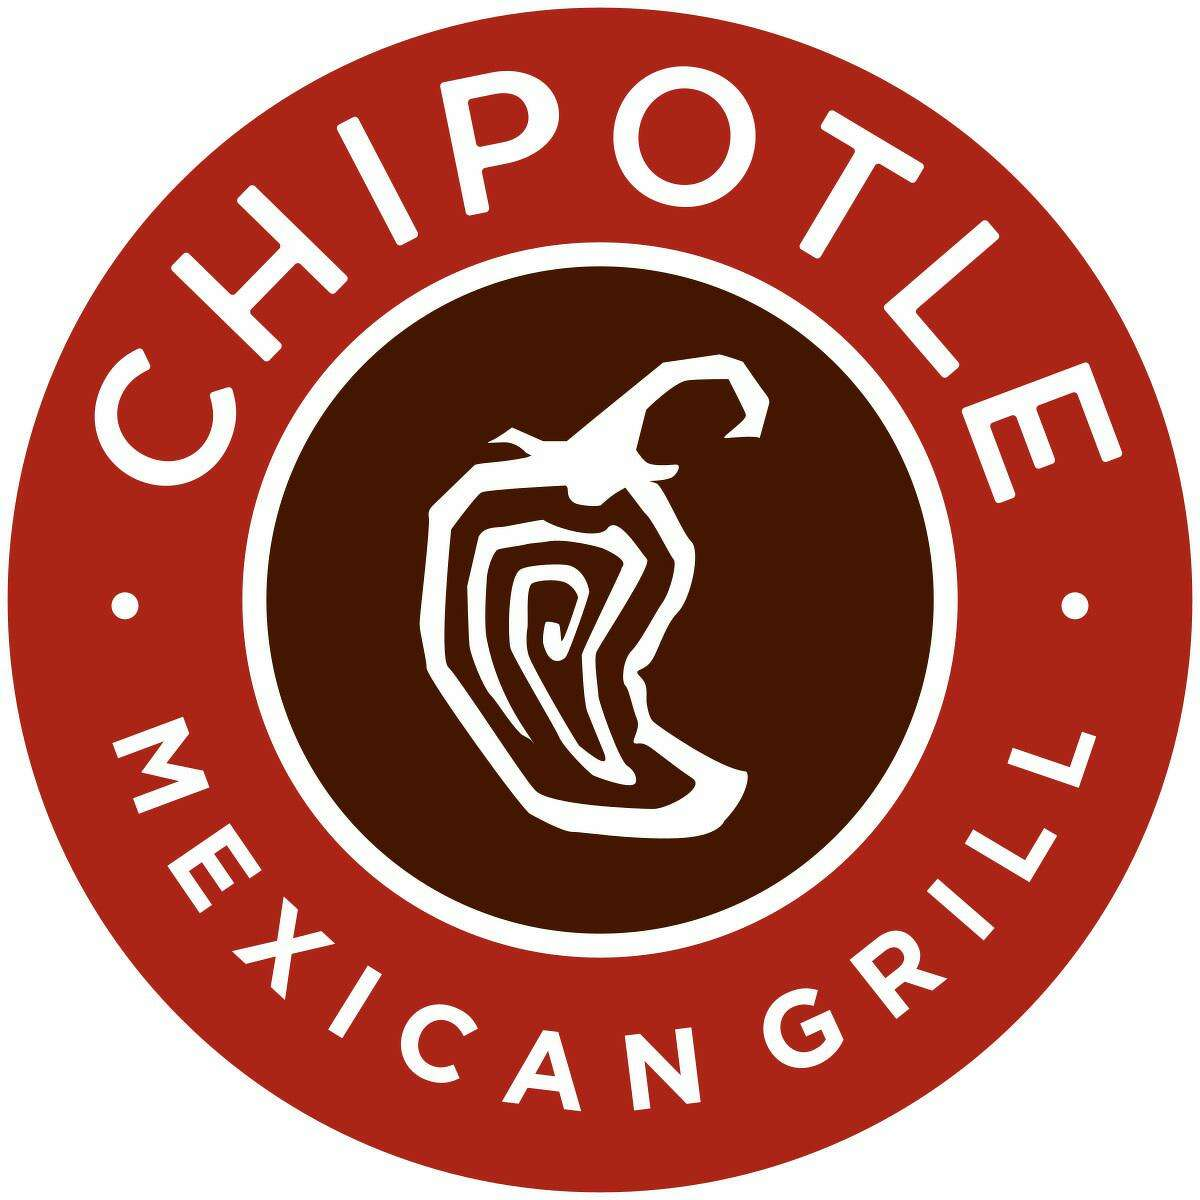 Chipotle Mexican Grill has signed a 10-year lease for space in Litchfield Crossings shopping plaza in New Milford.